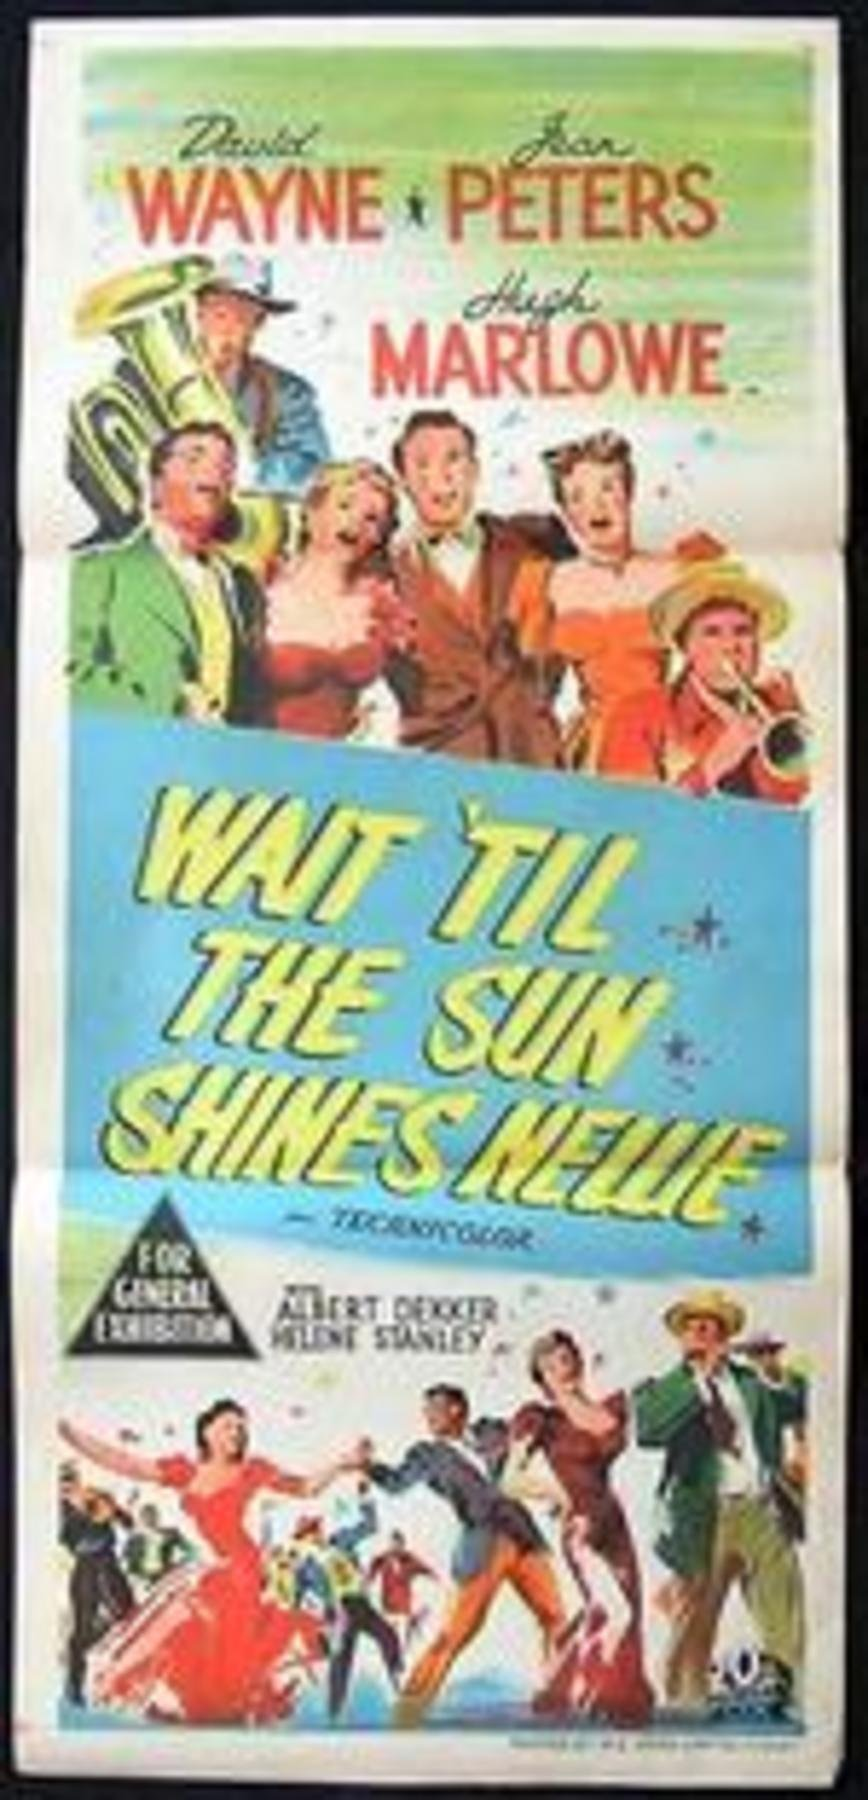 Wait Till the Sun Shines, Nellie Movie Poster